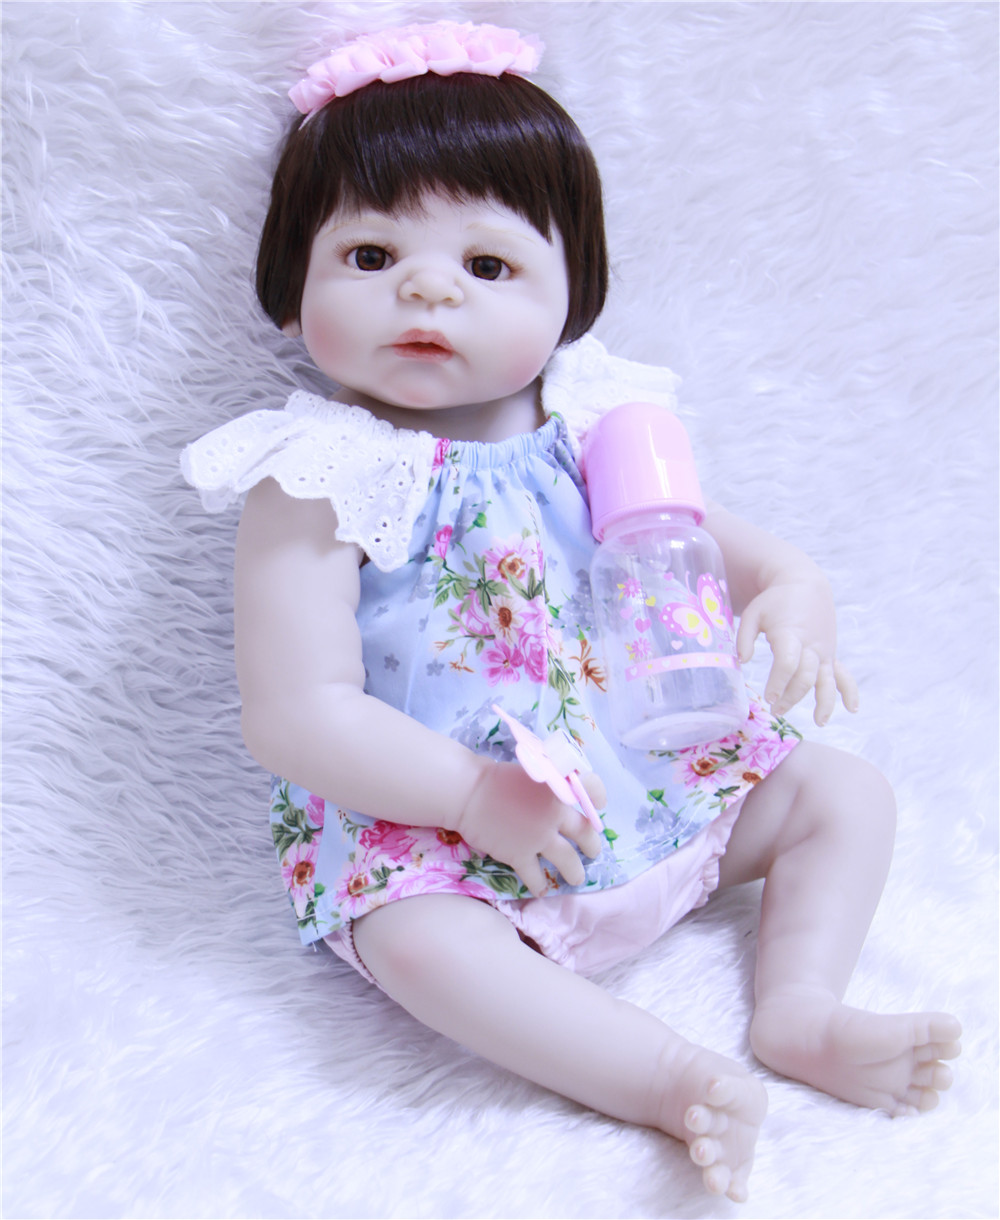 NPKCOLLECTION New 55cm Full Silicone Reborn Girl Baby Doll Toys Lifelike Newborn Princess Babies Doll kids Gift bebe toy rebornNPKCOLLECTION New 55cm Full Silicone Reborn Girl Baby Doll Toys Lifelike Newborn Princess Babies Doll kids Gift bebe toy reborn